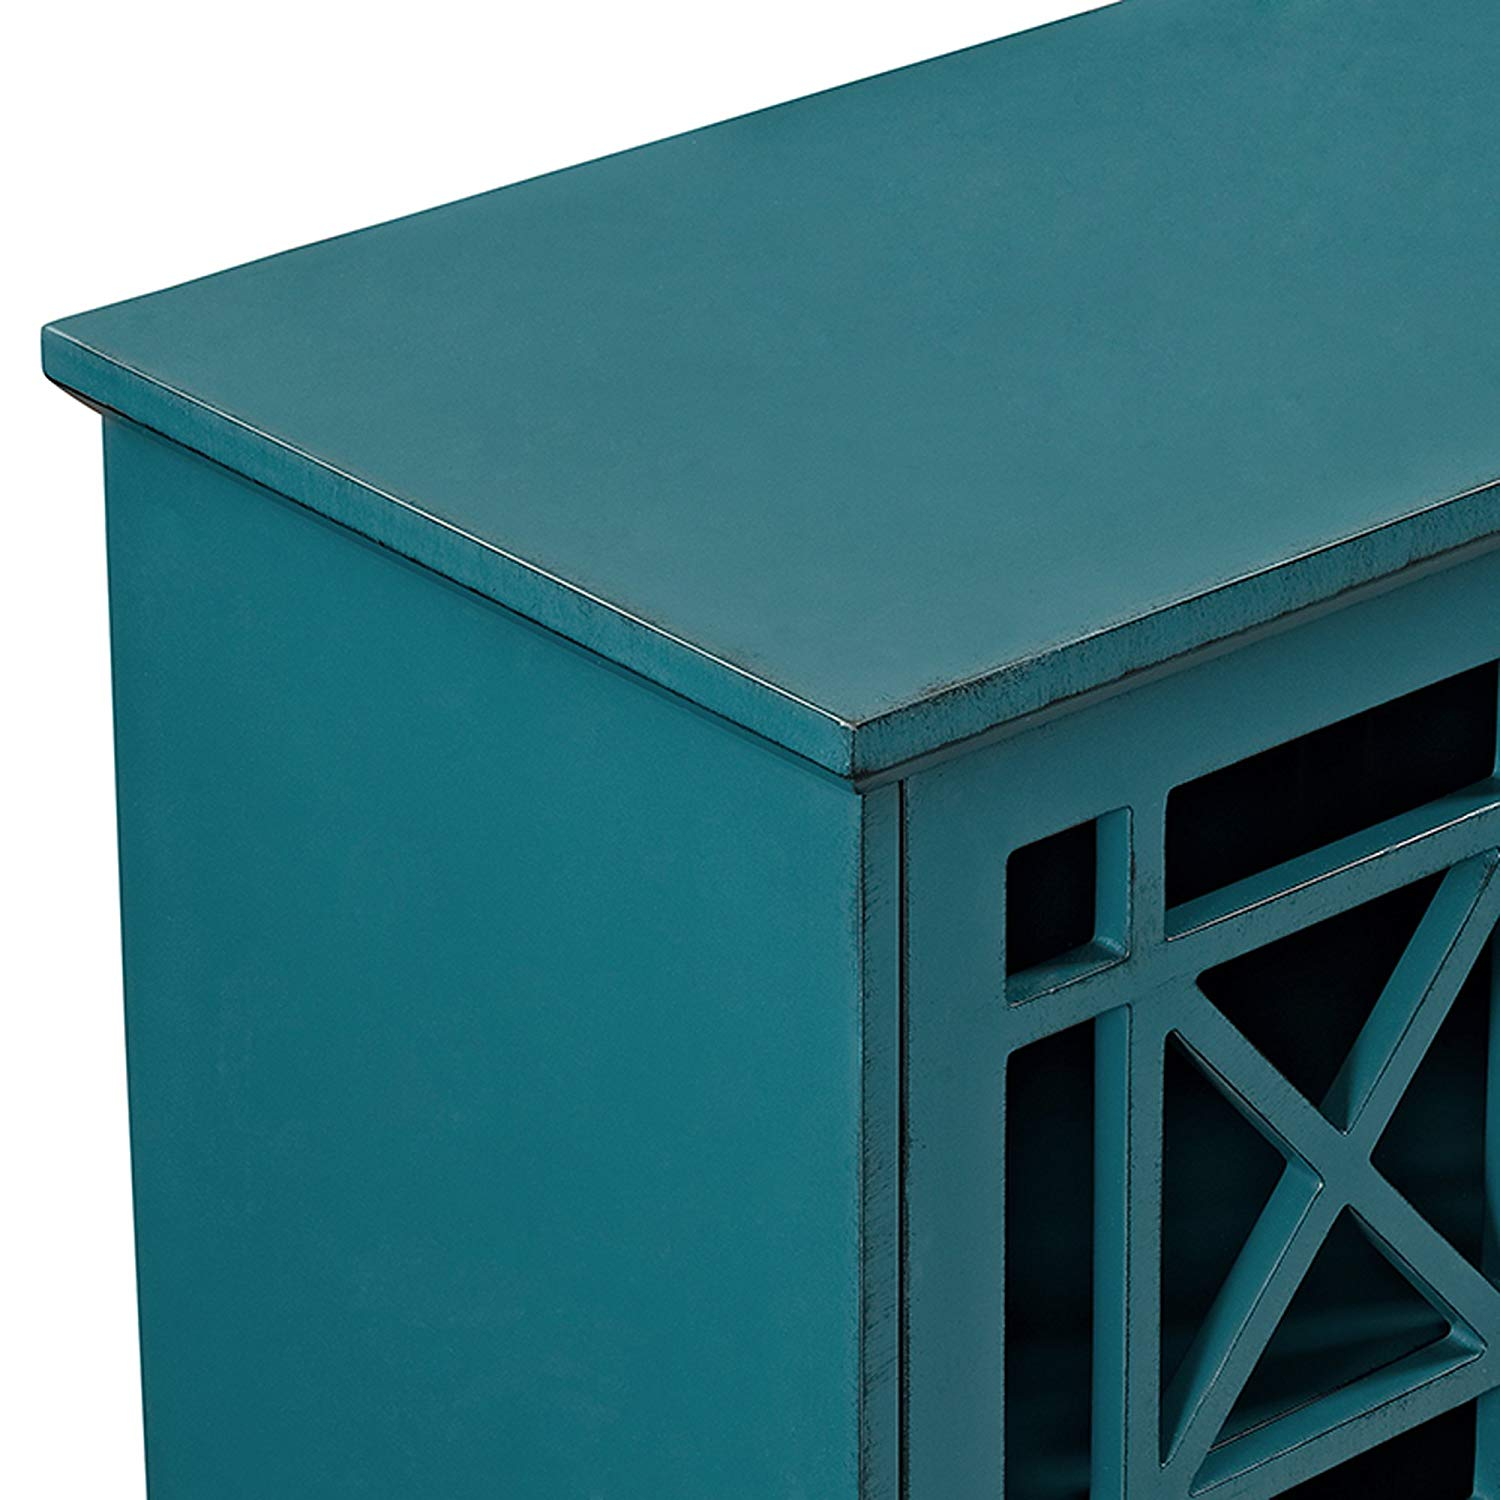 furniture fretwork accent console blue tables table changing pad roland drum stool cylinder end sofa and side cloth magazine modern outdoor silver west elm media hobby lobby metal